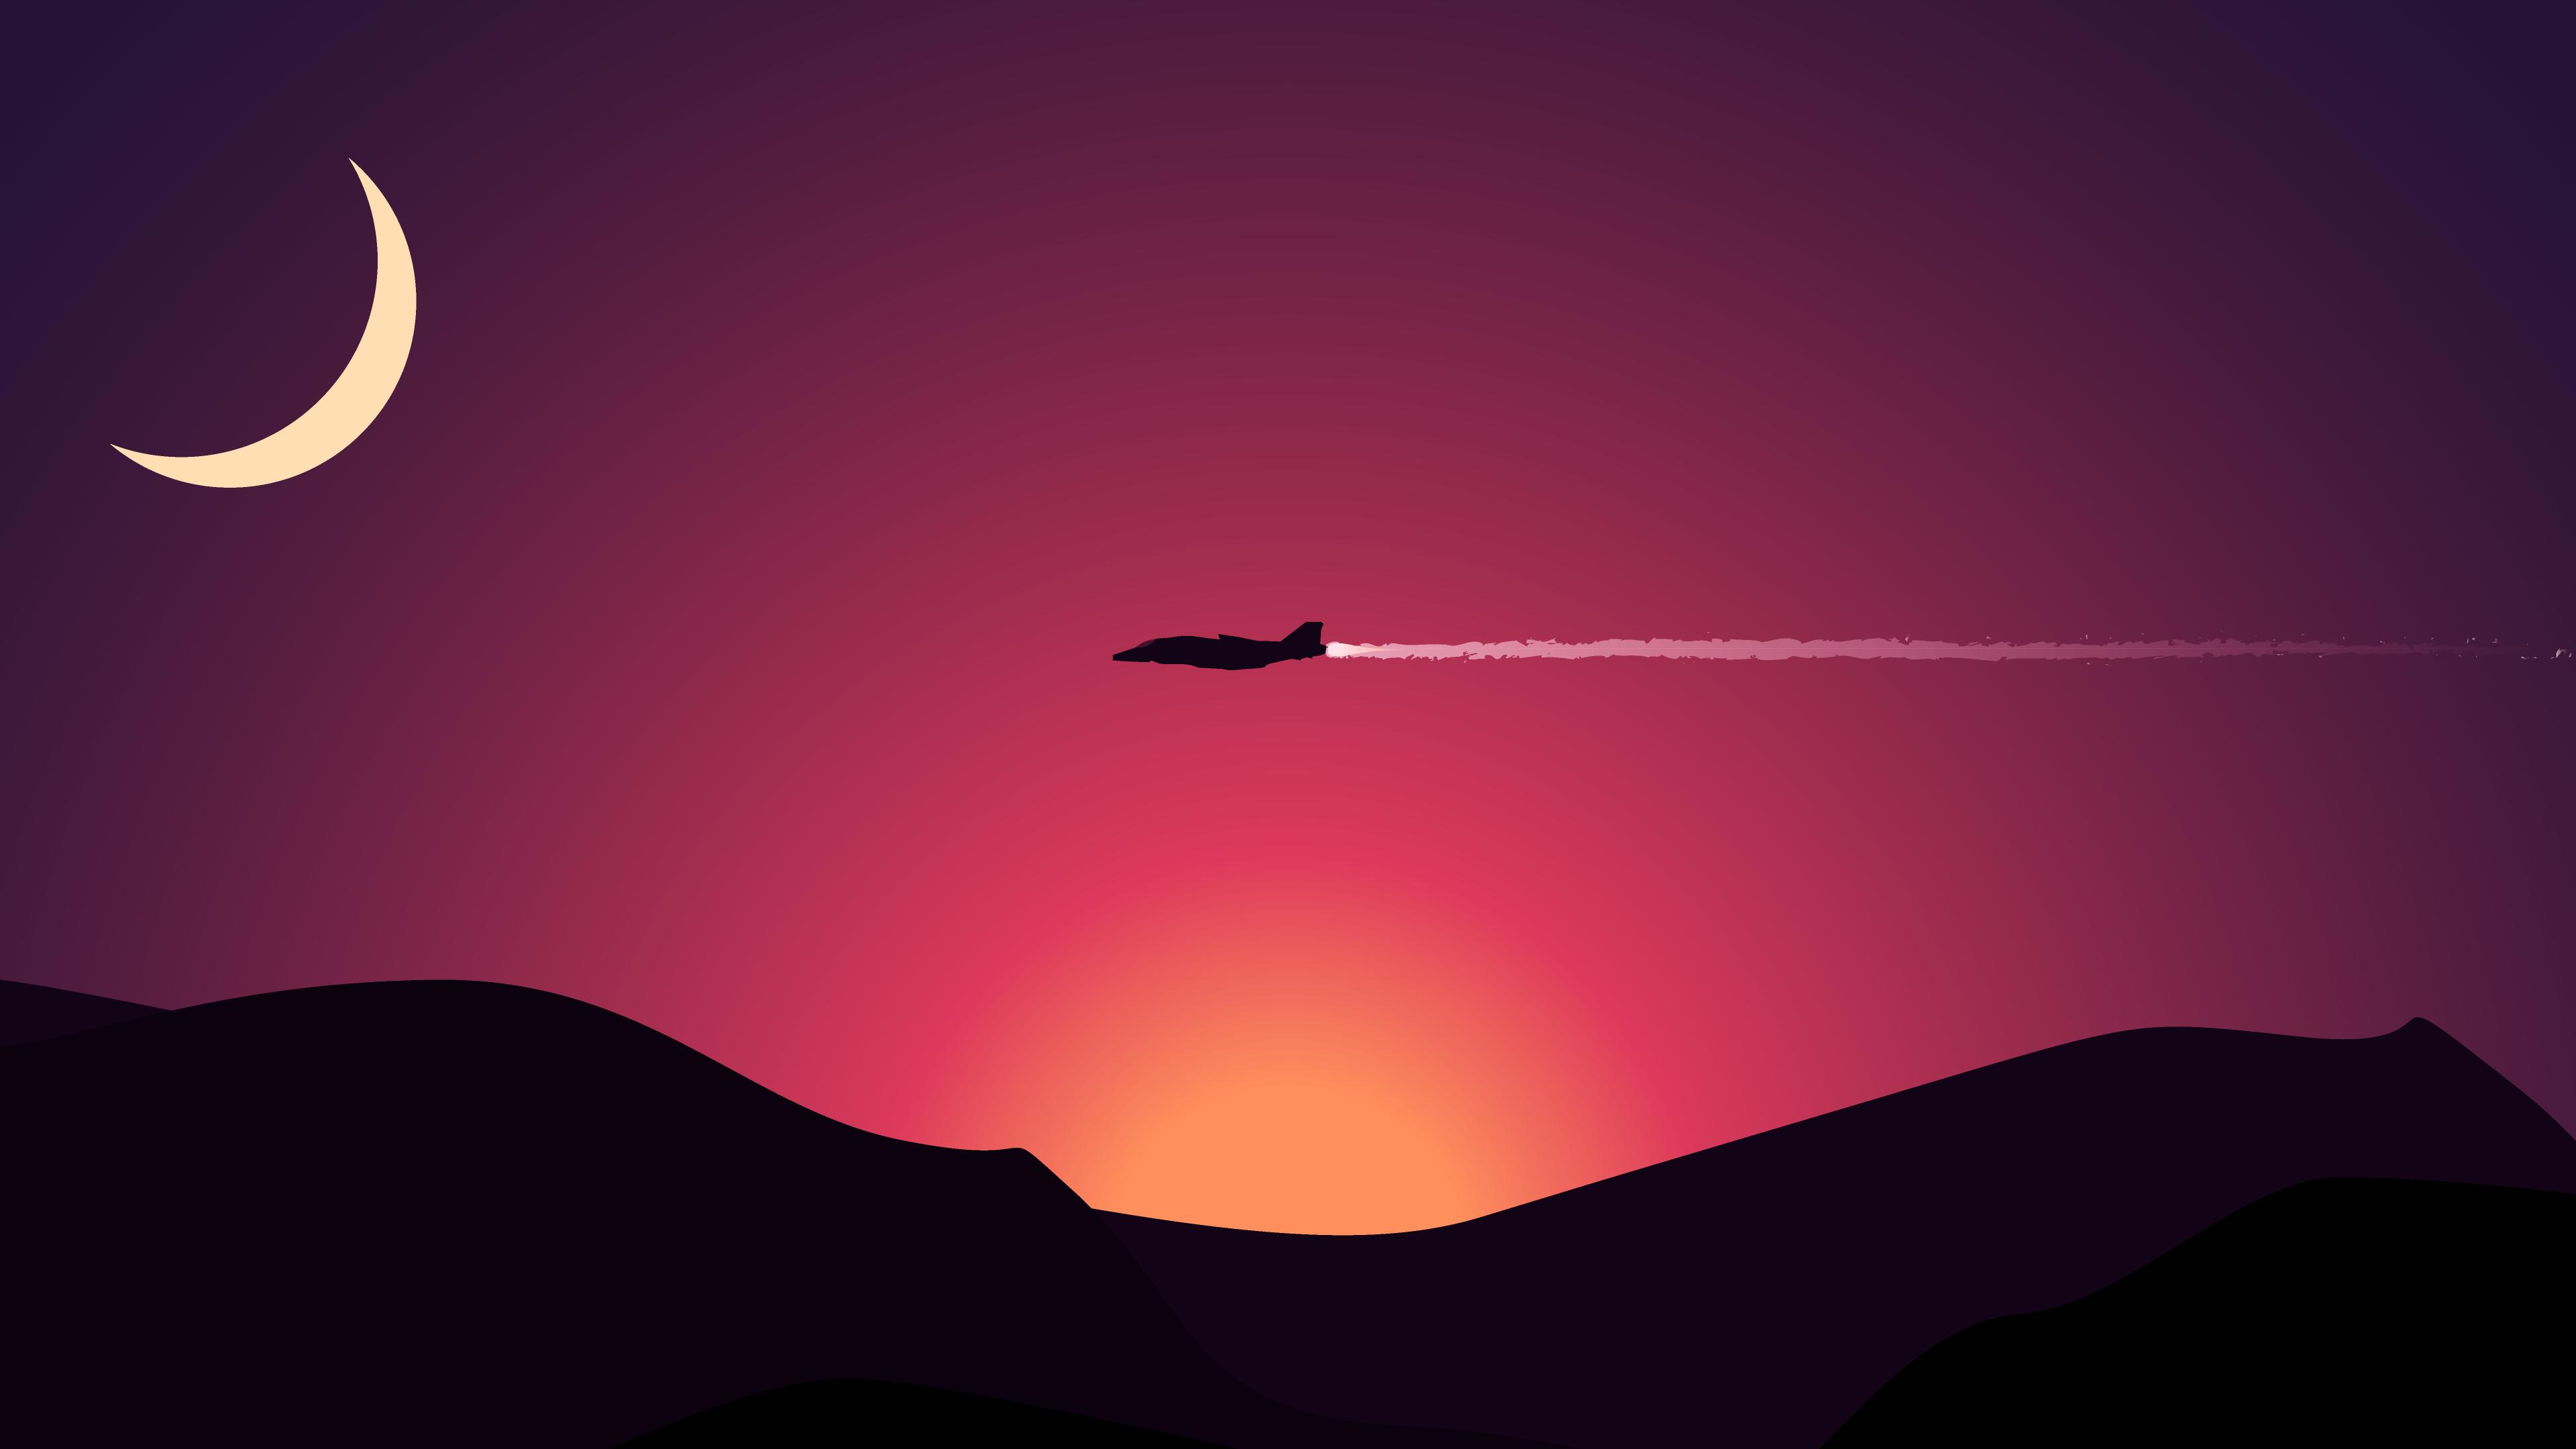 minimalism plane flying above mountains moon 4k 1540751478 - Minimalism Plane Flying Above Mountains Moon 4k - sunset wallpapers, plane wallpapers, mountains wallpapers, moon wallpapers, minimalism wallpapers, hd-wallpapers, flying wallpapers, 4k-wallpapers